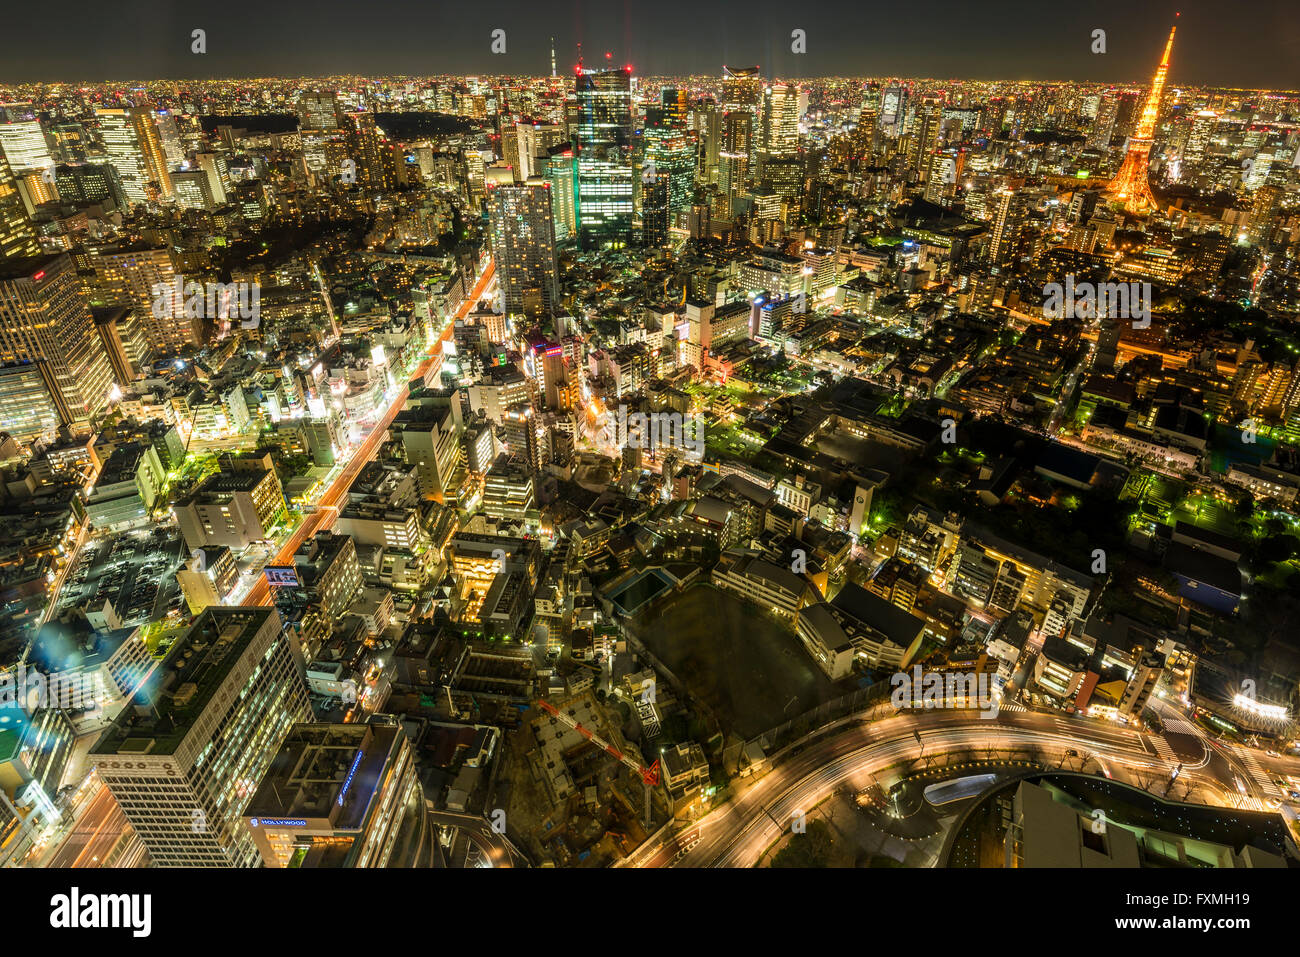 Tokyo tower and high rise buildings at night in Tokyo, Japan - Stock Image